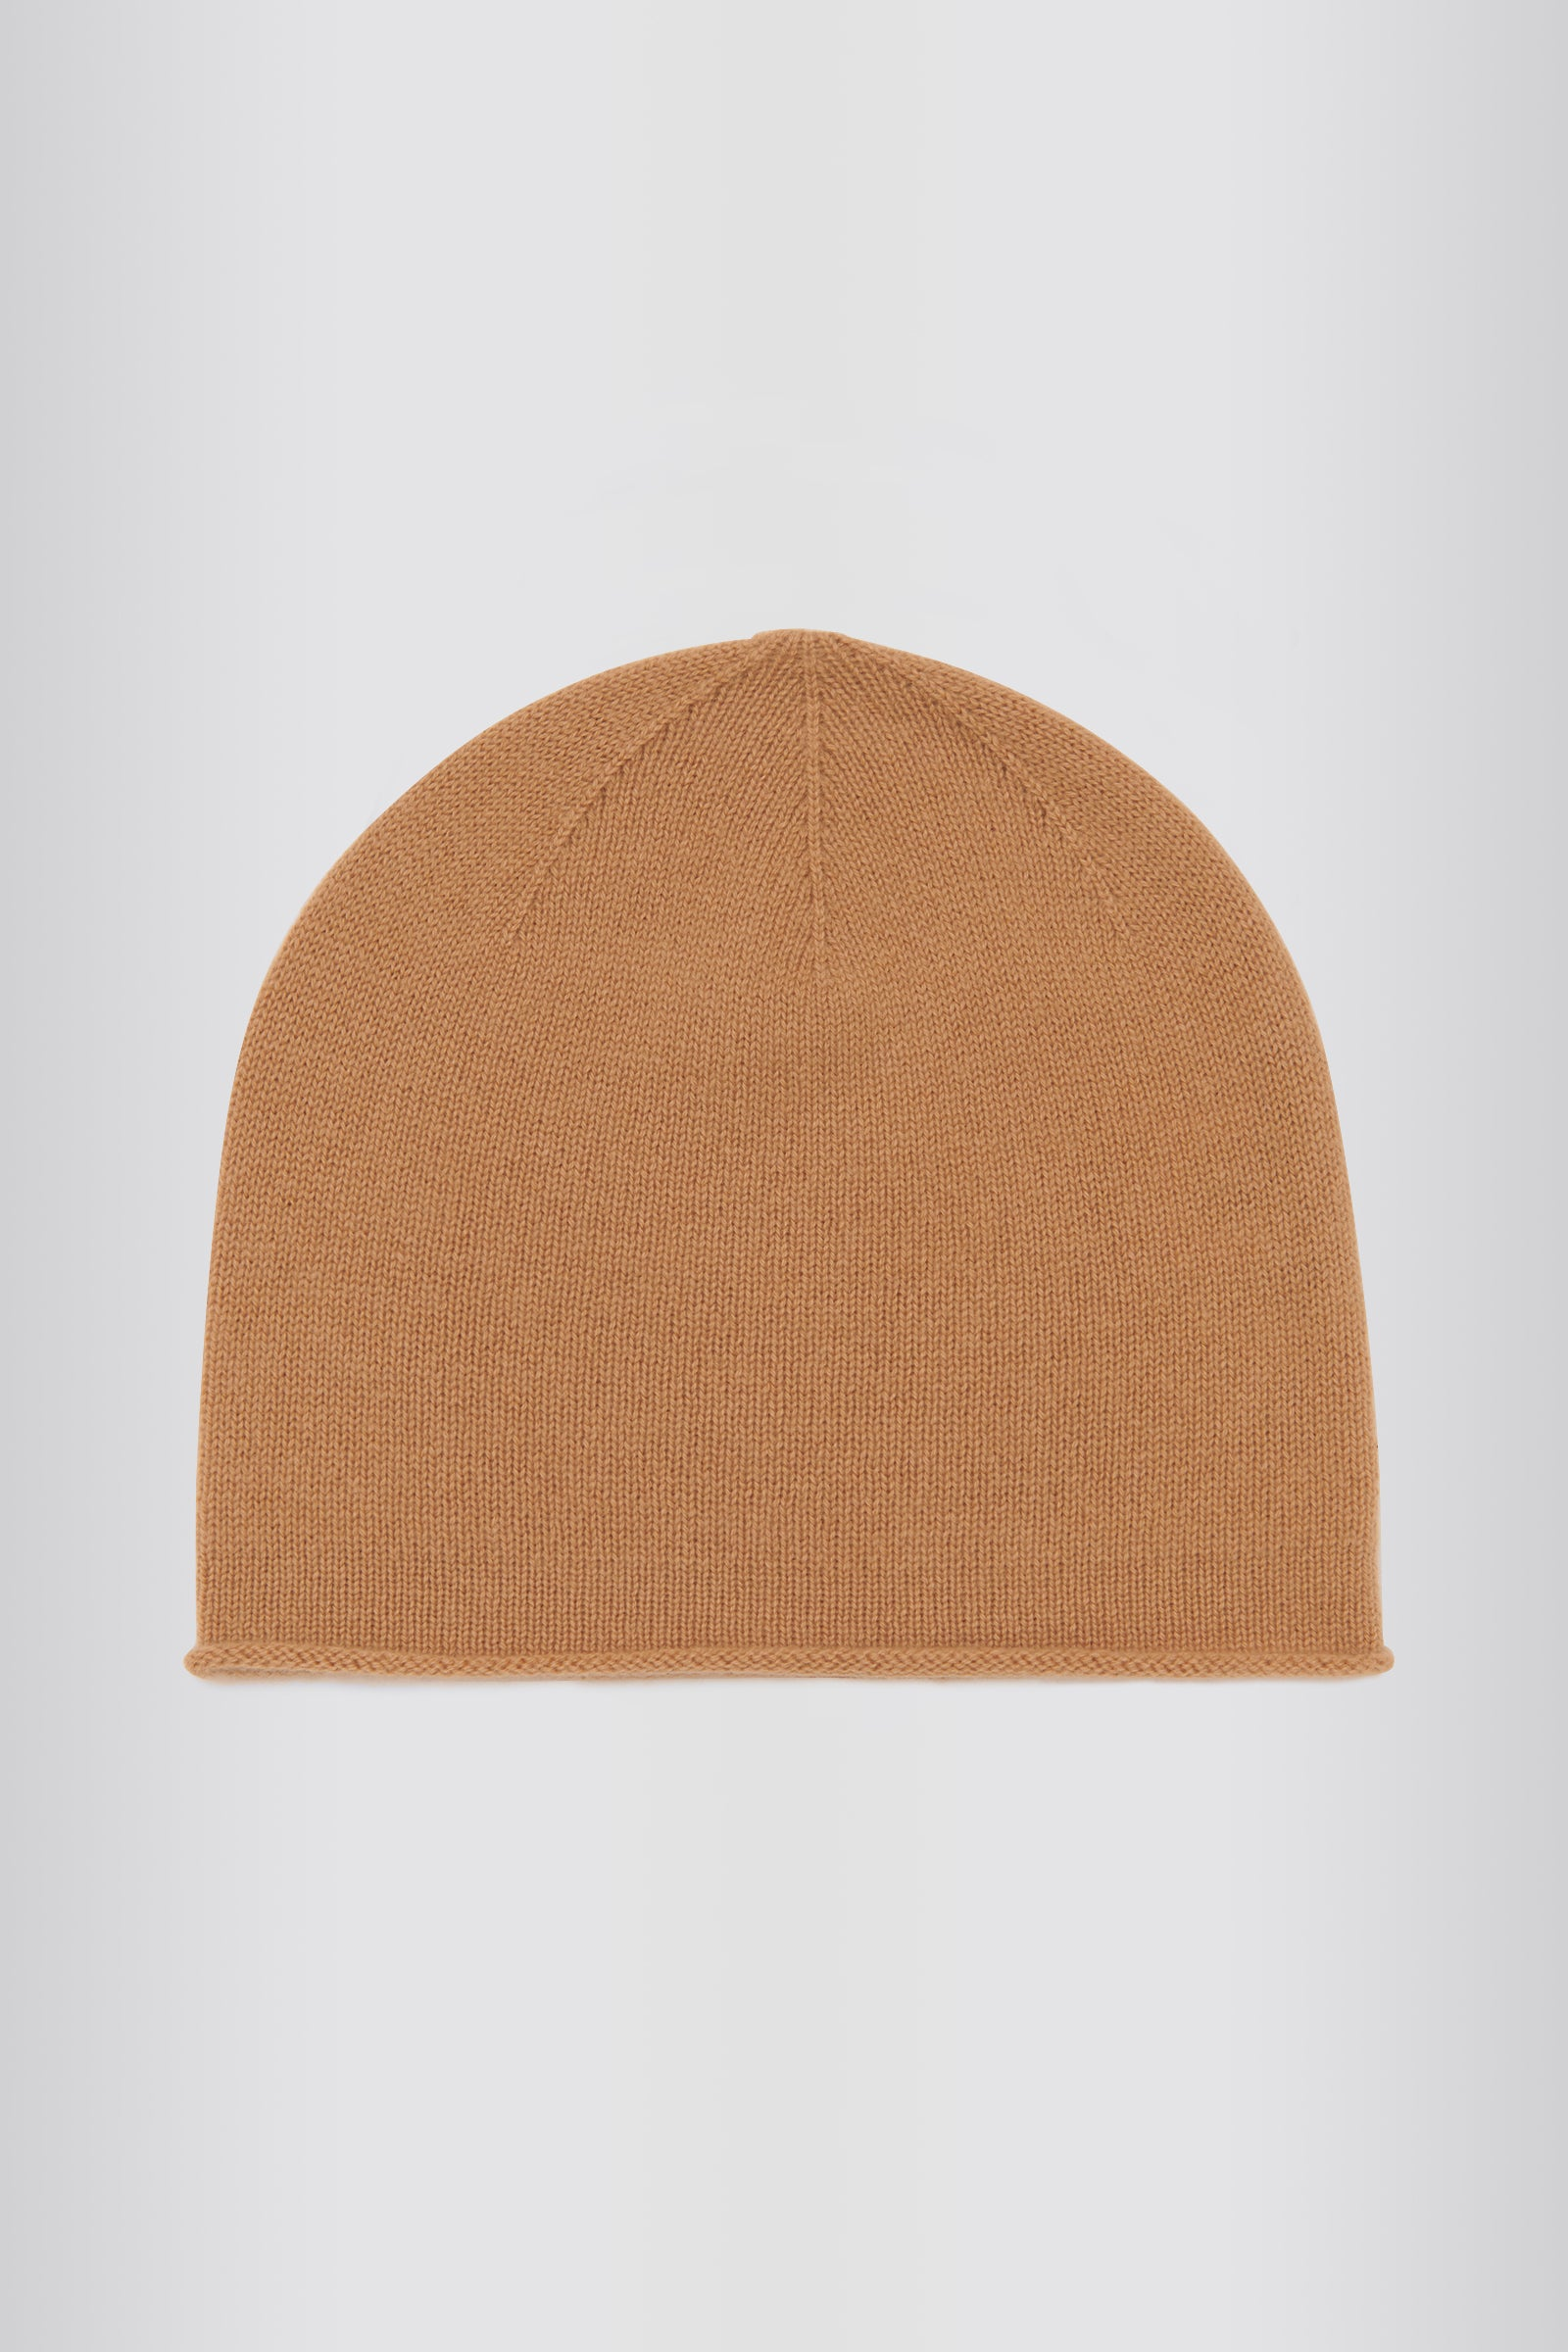 Kal Rieman Cashmere Cap in Camel on Model Front View